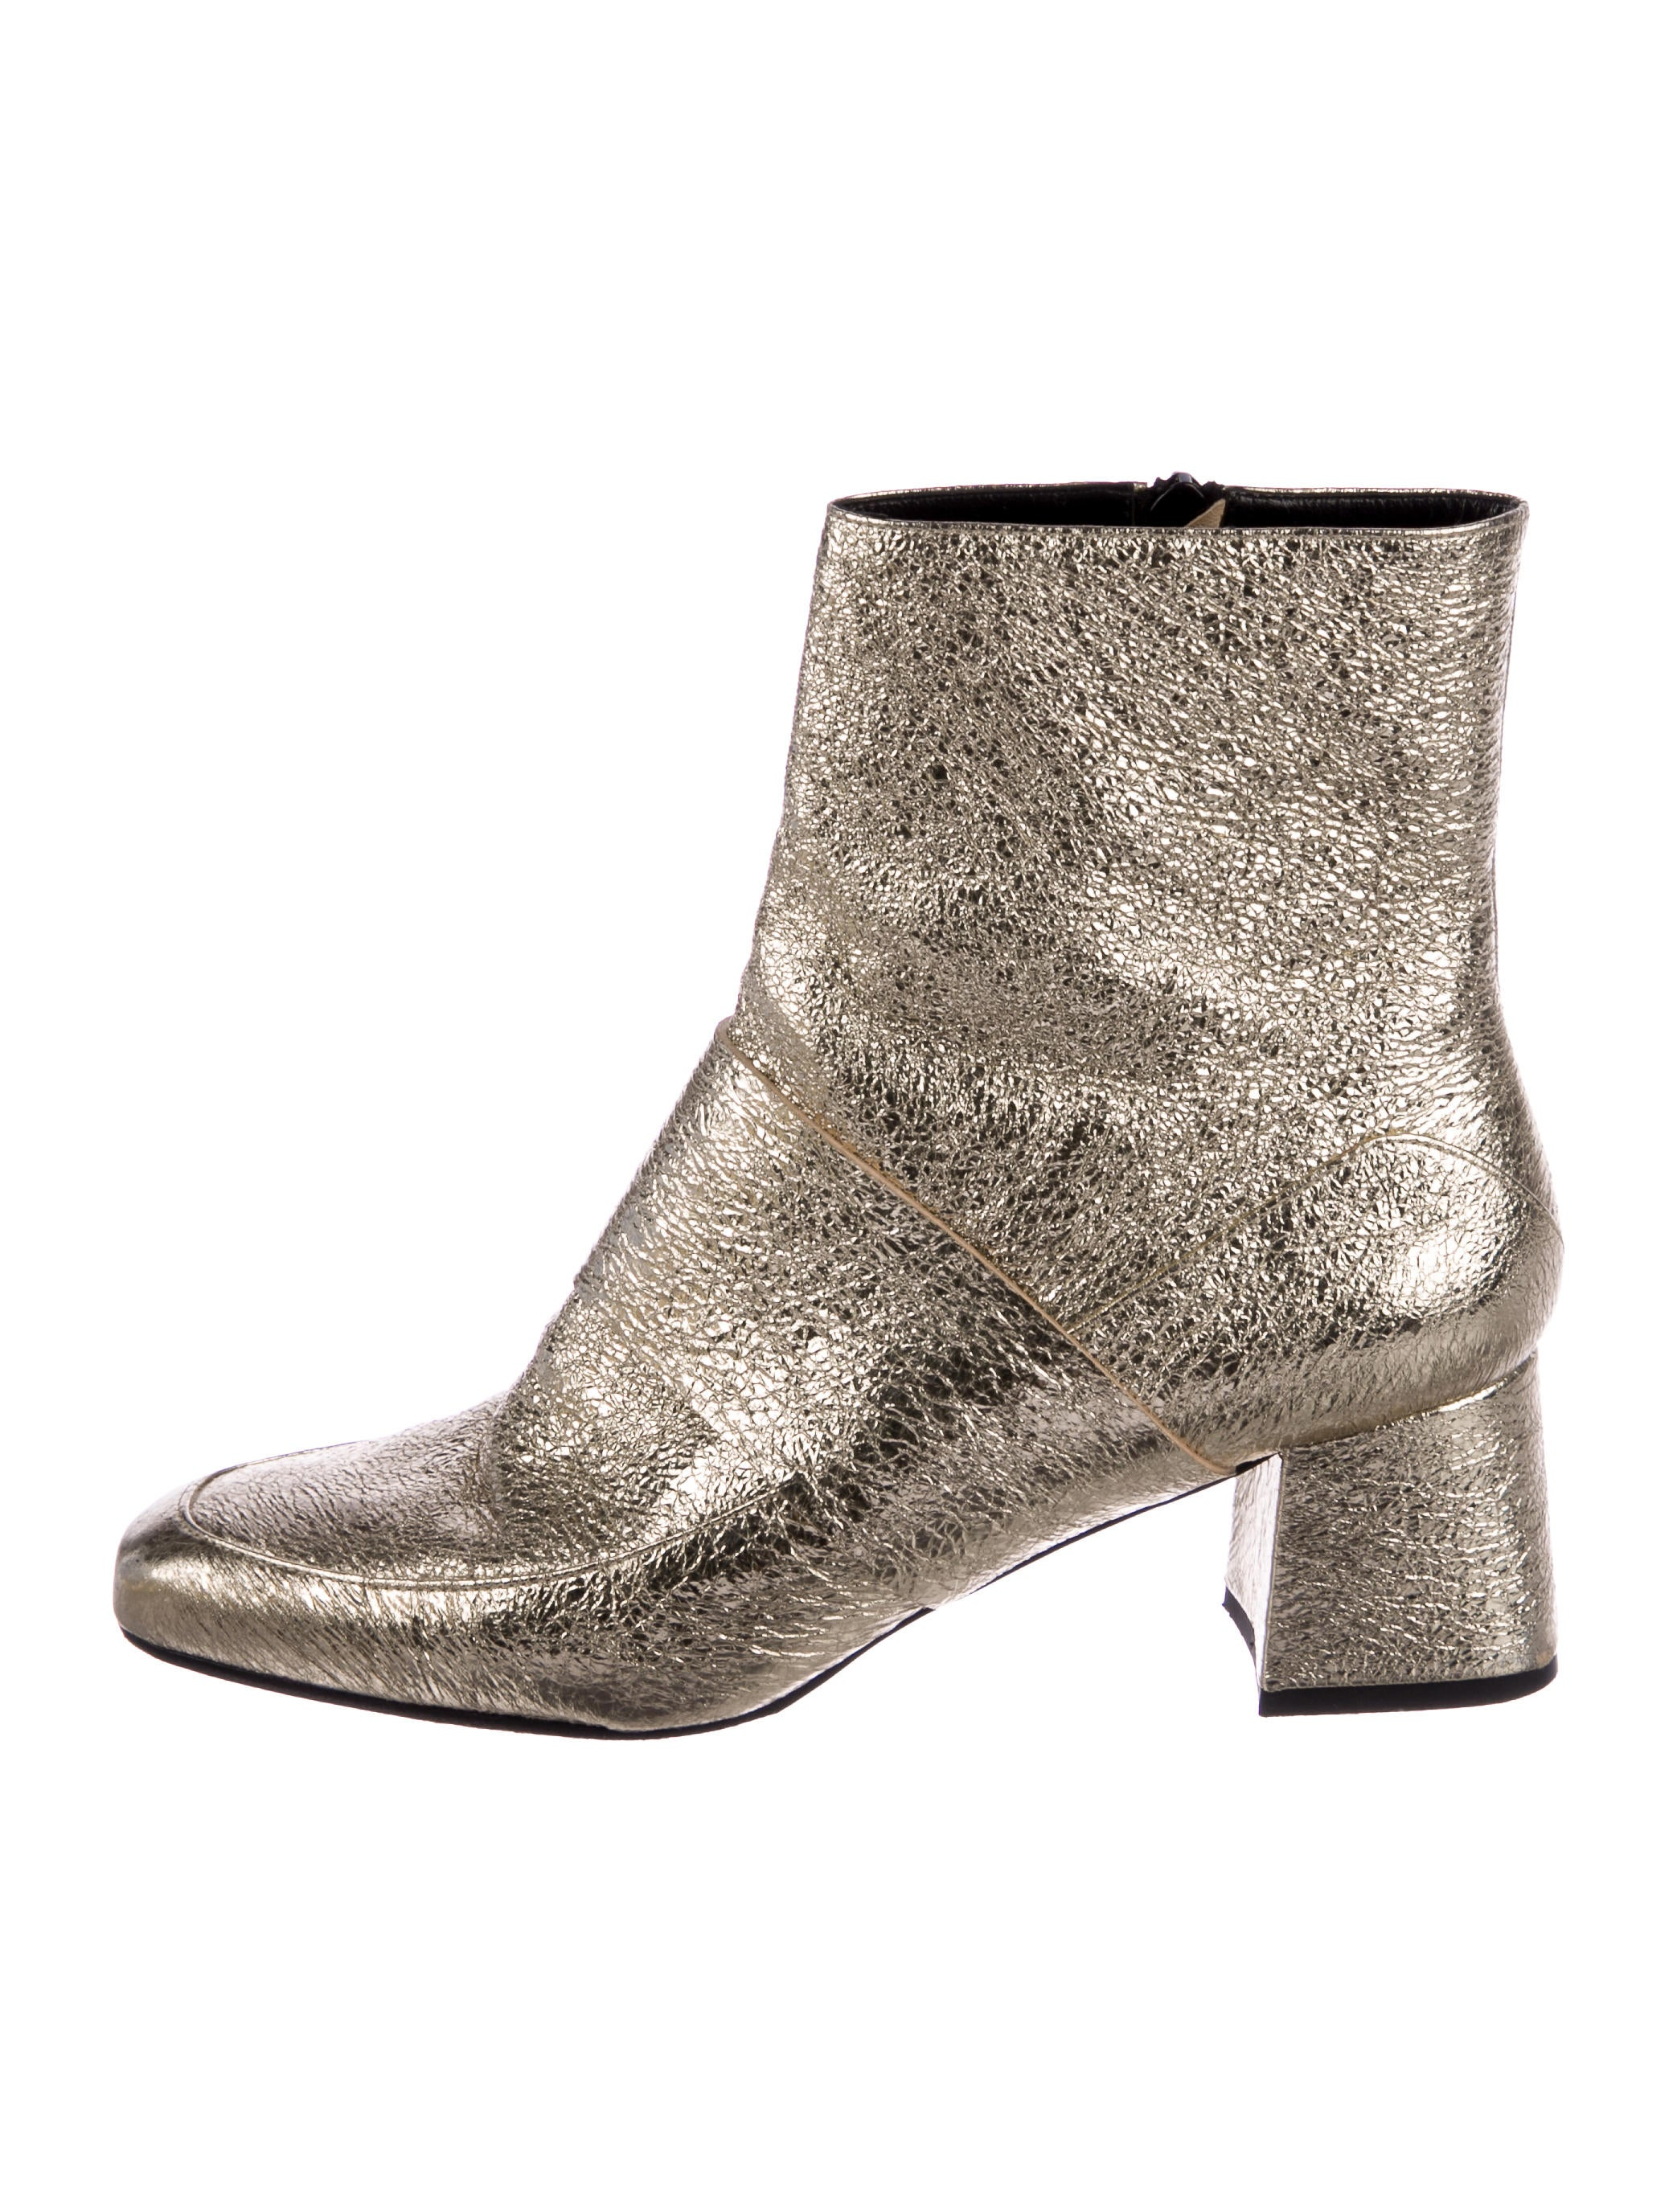 Aska Metallic Square-Toe Ankle Boots footlocker cheap price clearance for nice buy cheap best store to get for sale cheap real classic cheap online xBA62xBZDQ